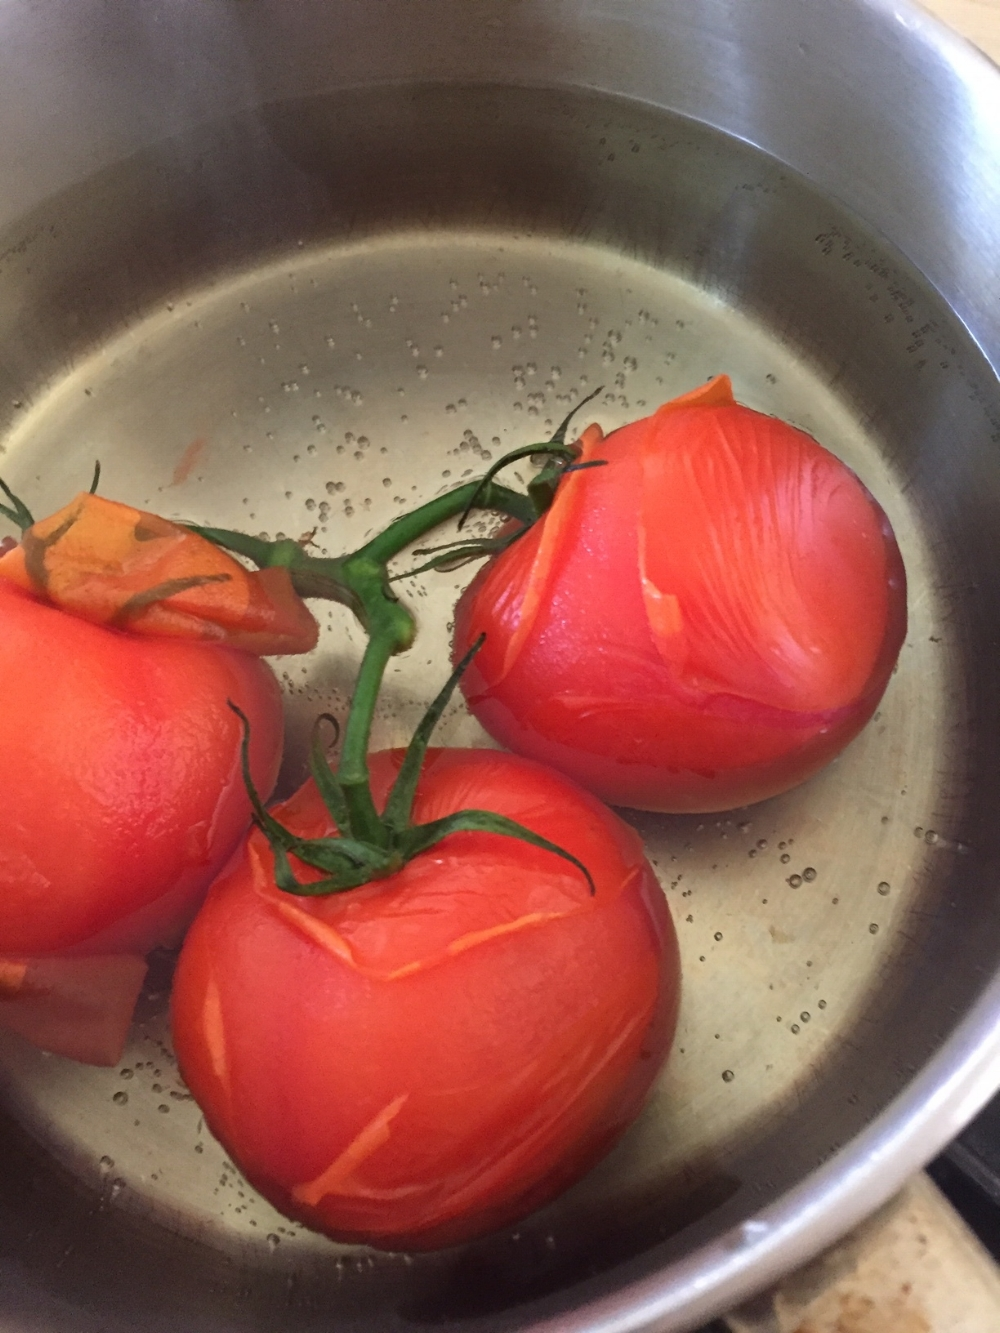 To peel tomatoes easily- drop into boiling water for 5 seconds then plunge into ice water. The skin slides right off.